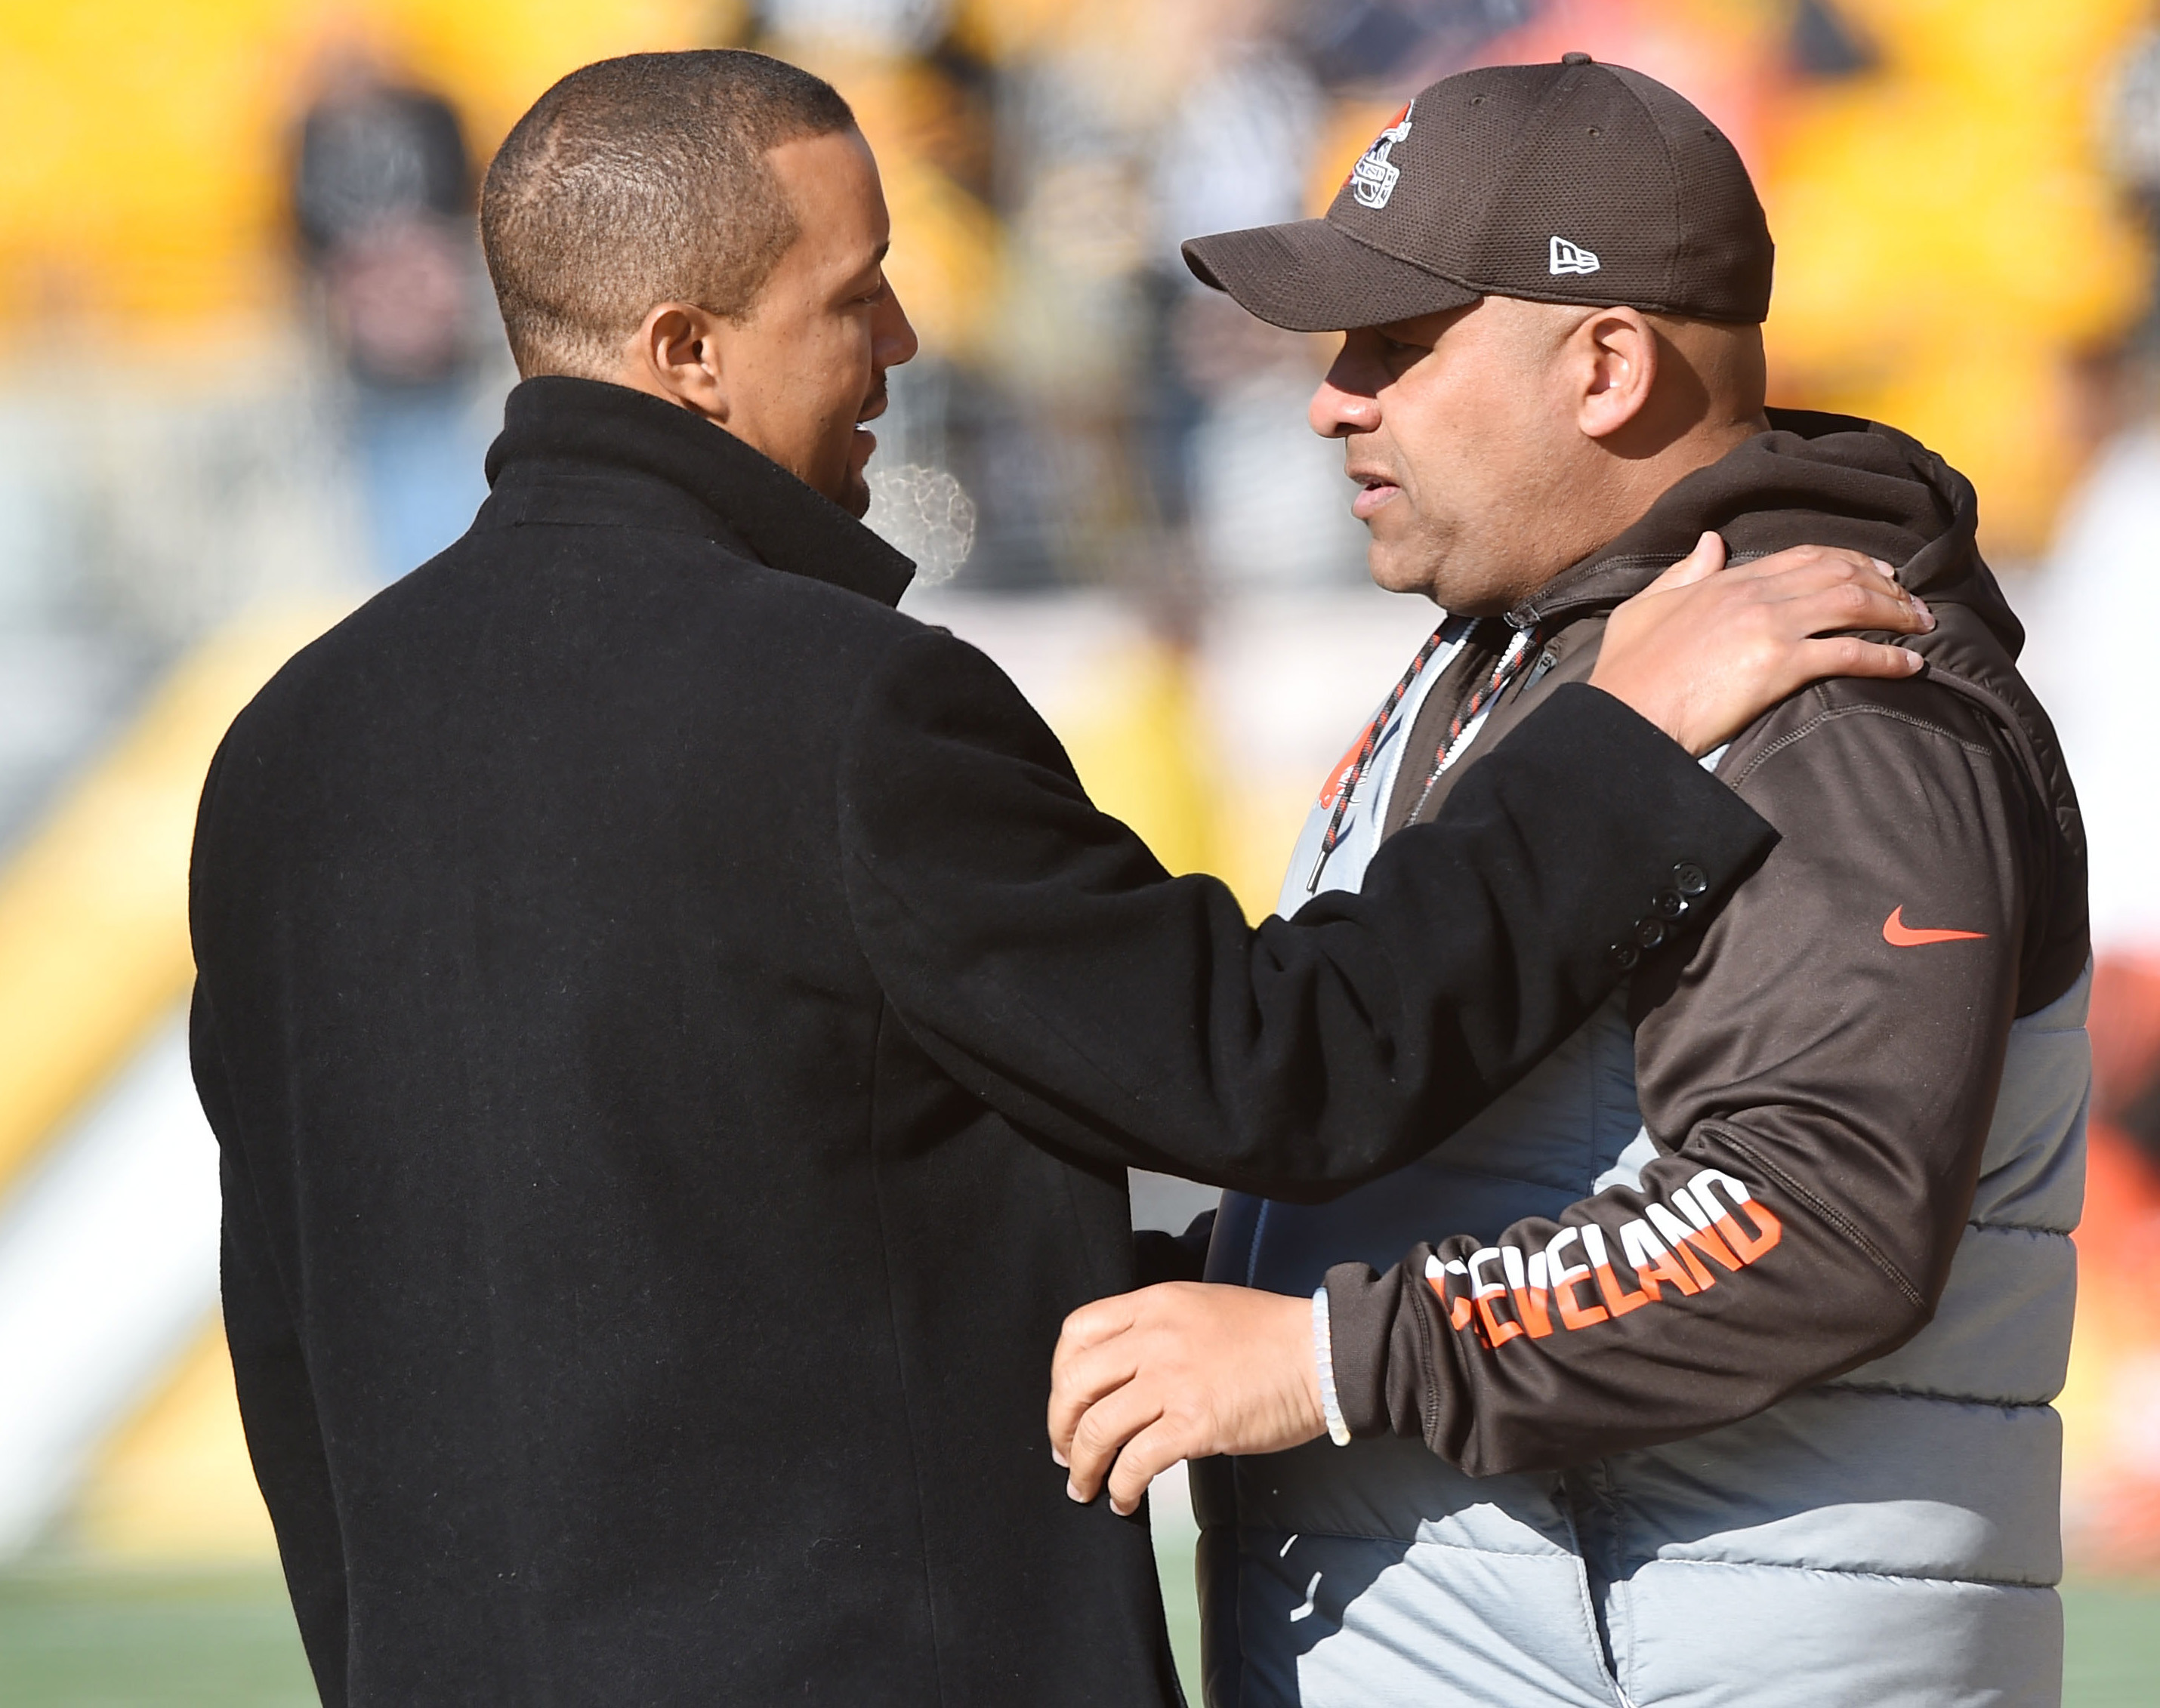 9781046-nfl-cleveland-browns-at-pittsburgh-steelers